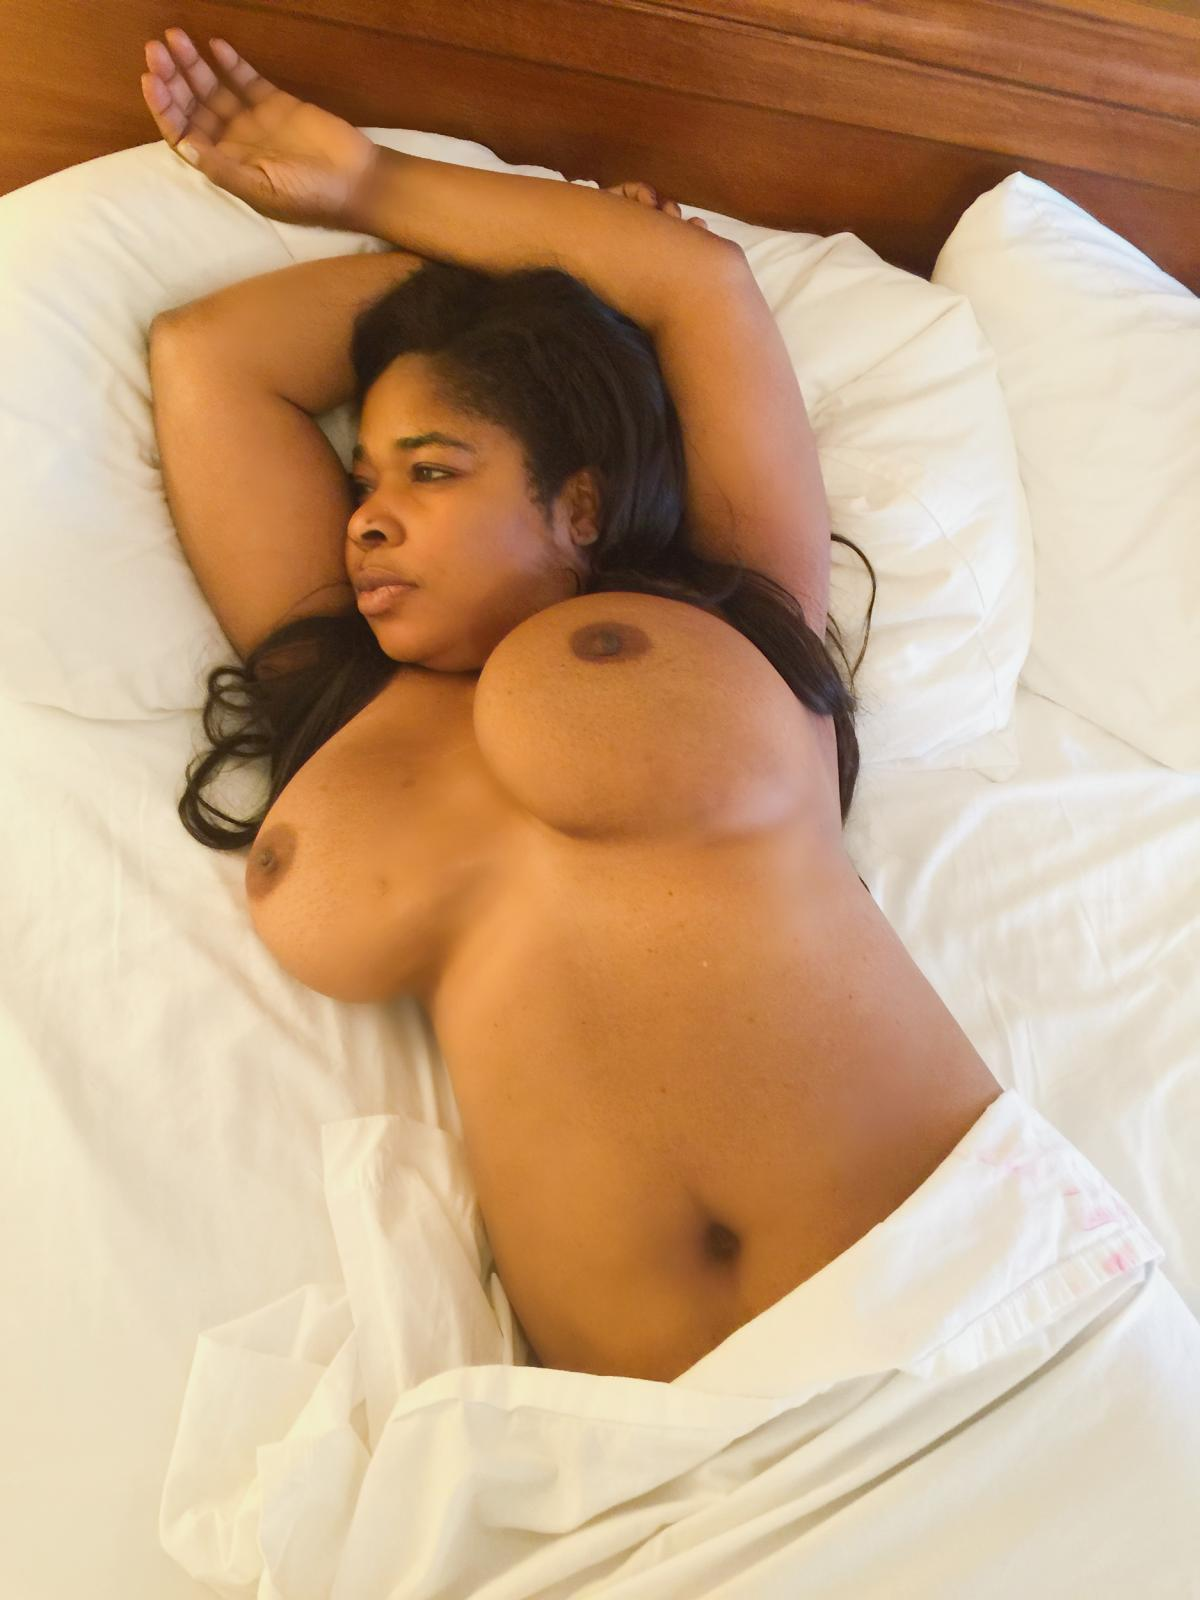 nigerian women nude photos